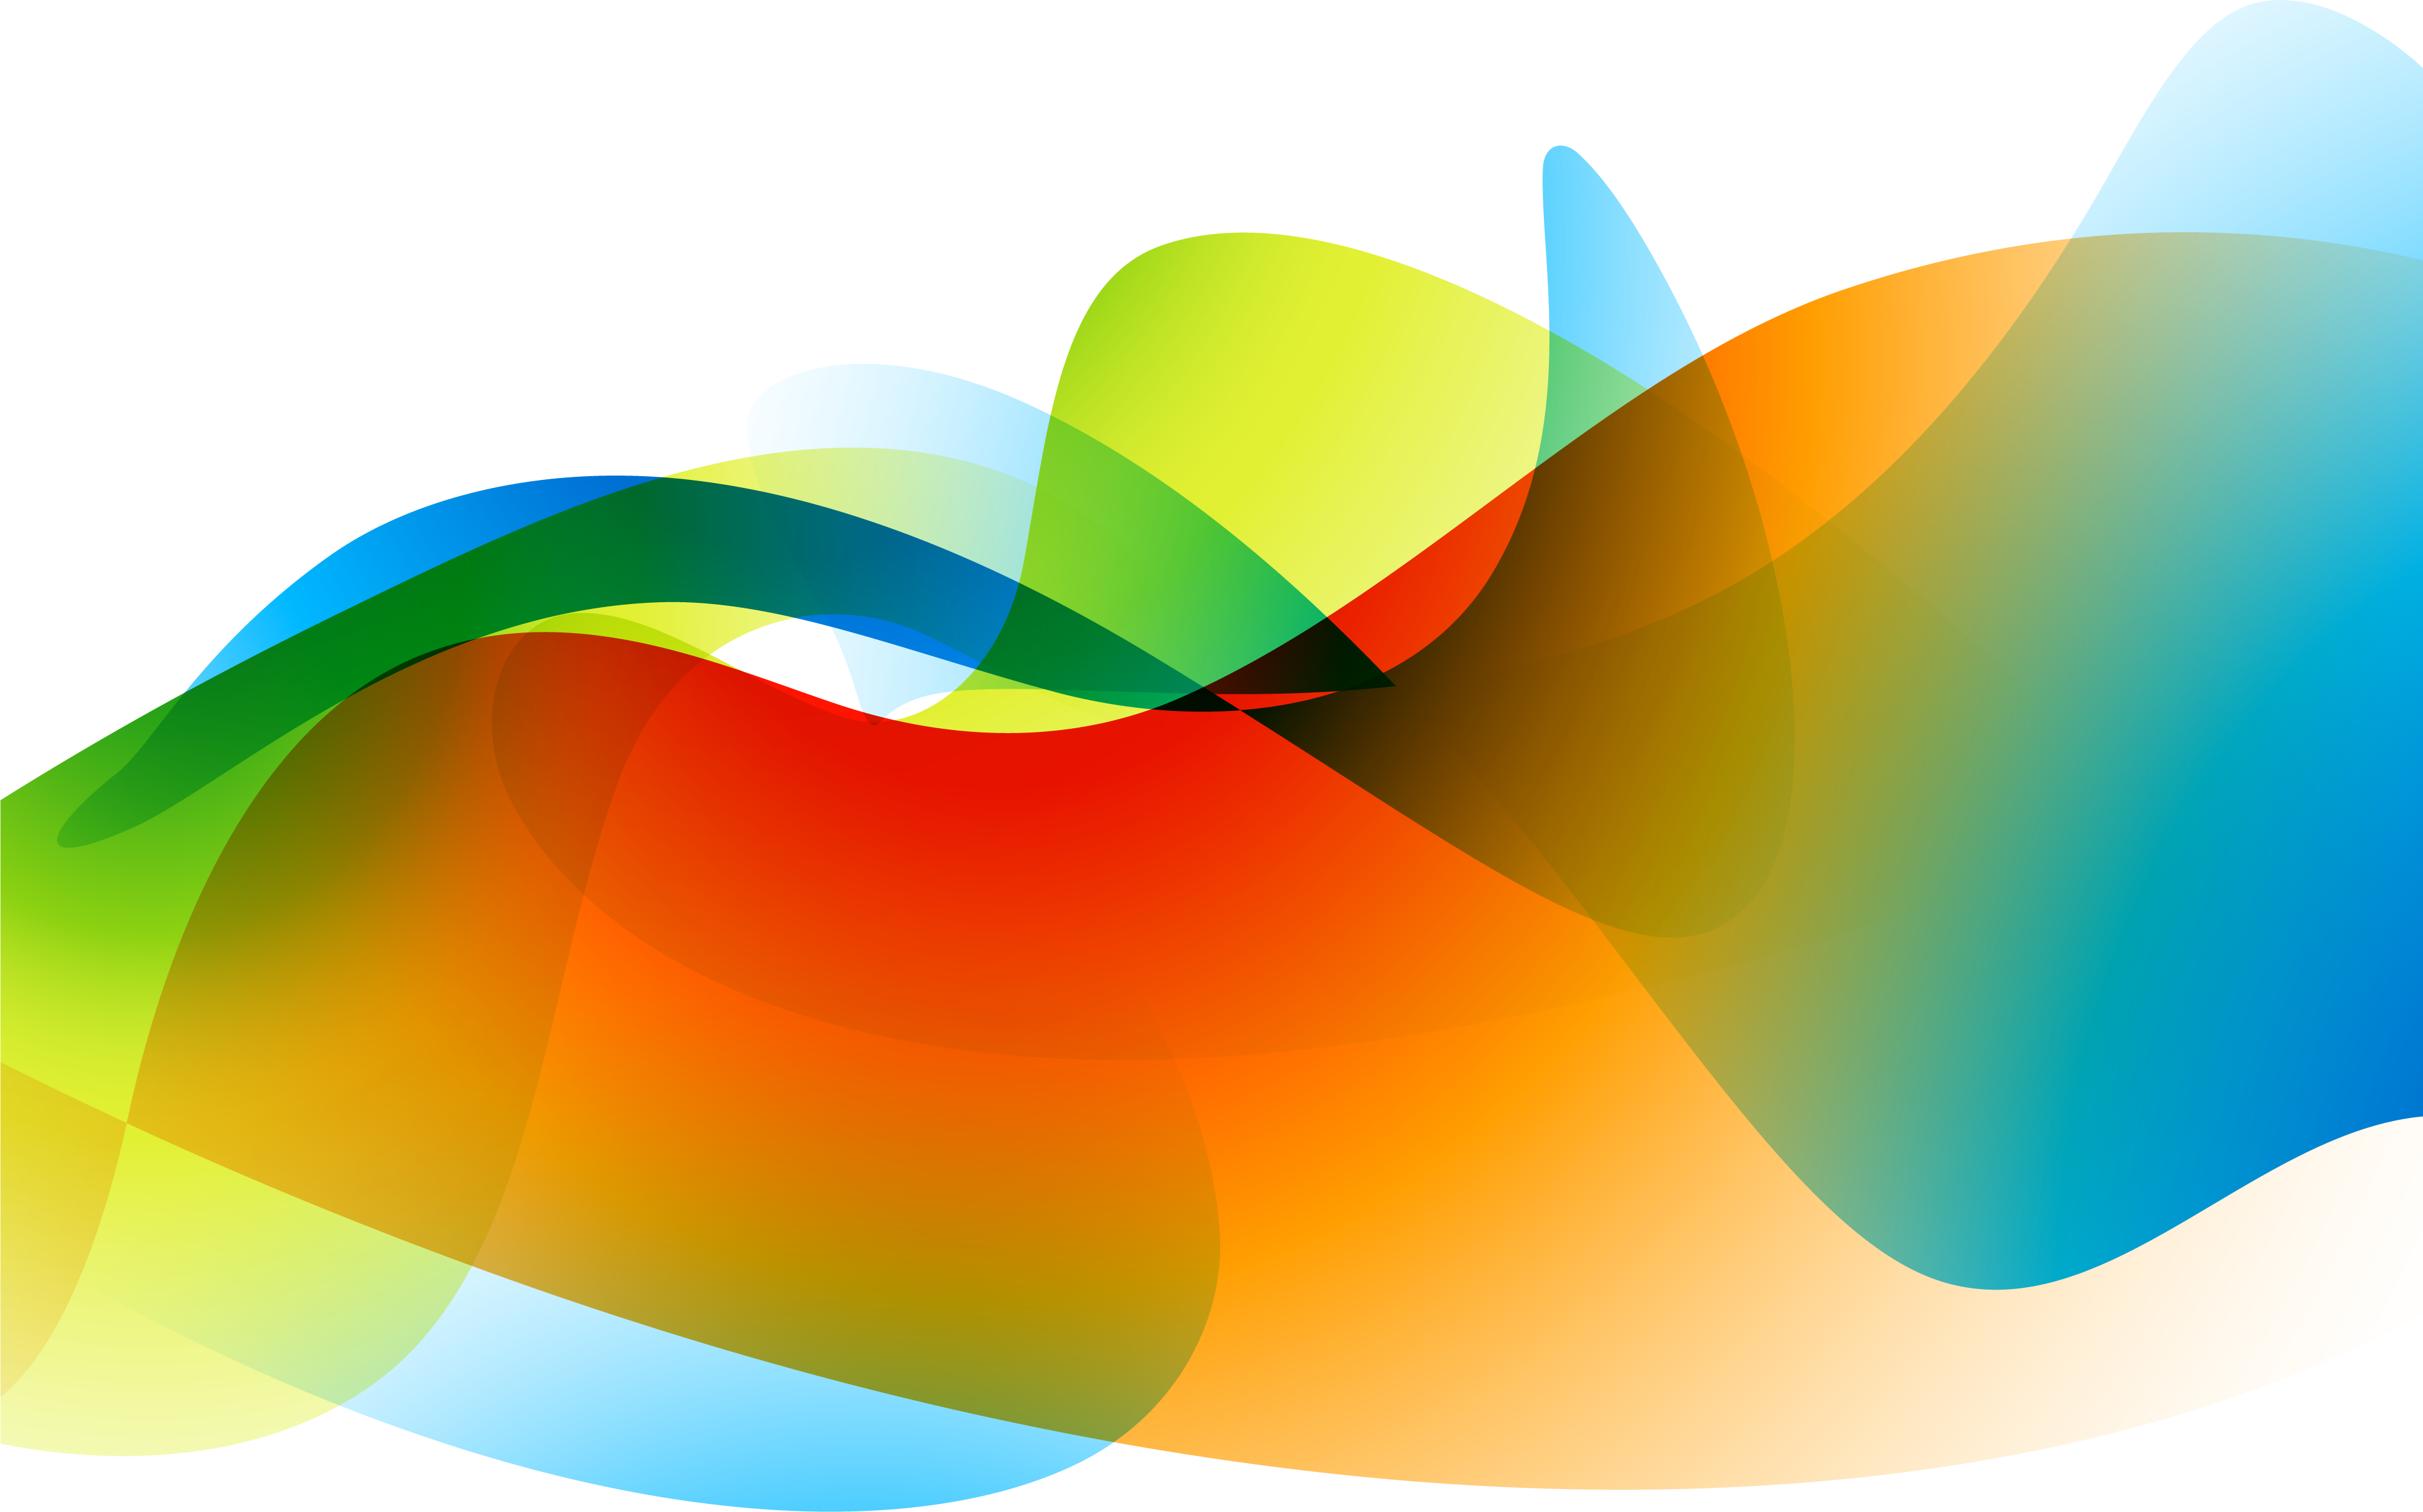 Colorful waves png. Wave stripes transprent free